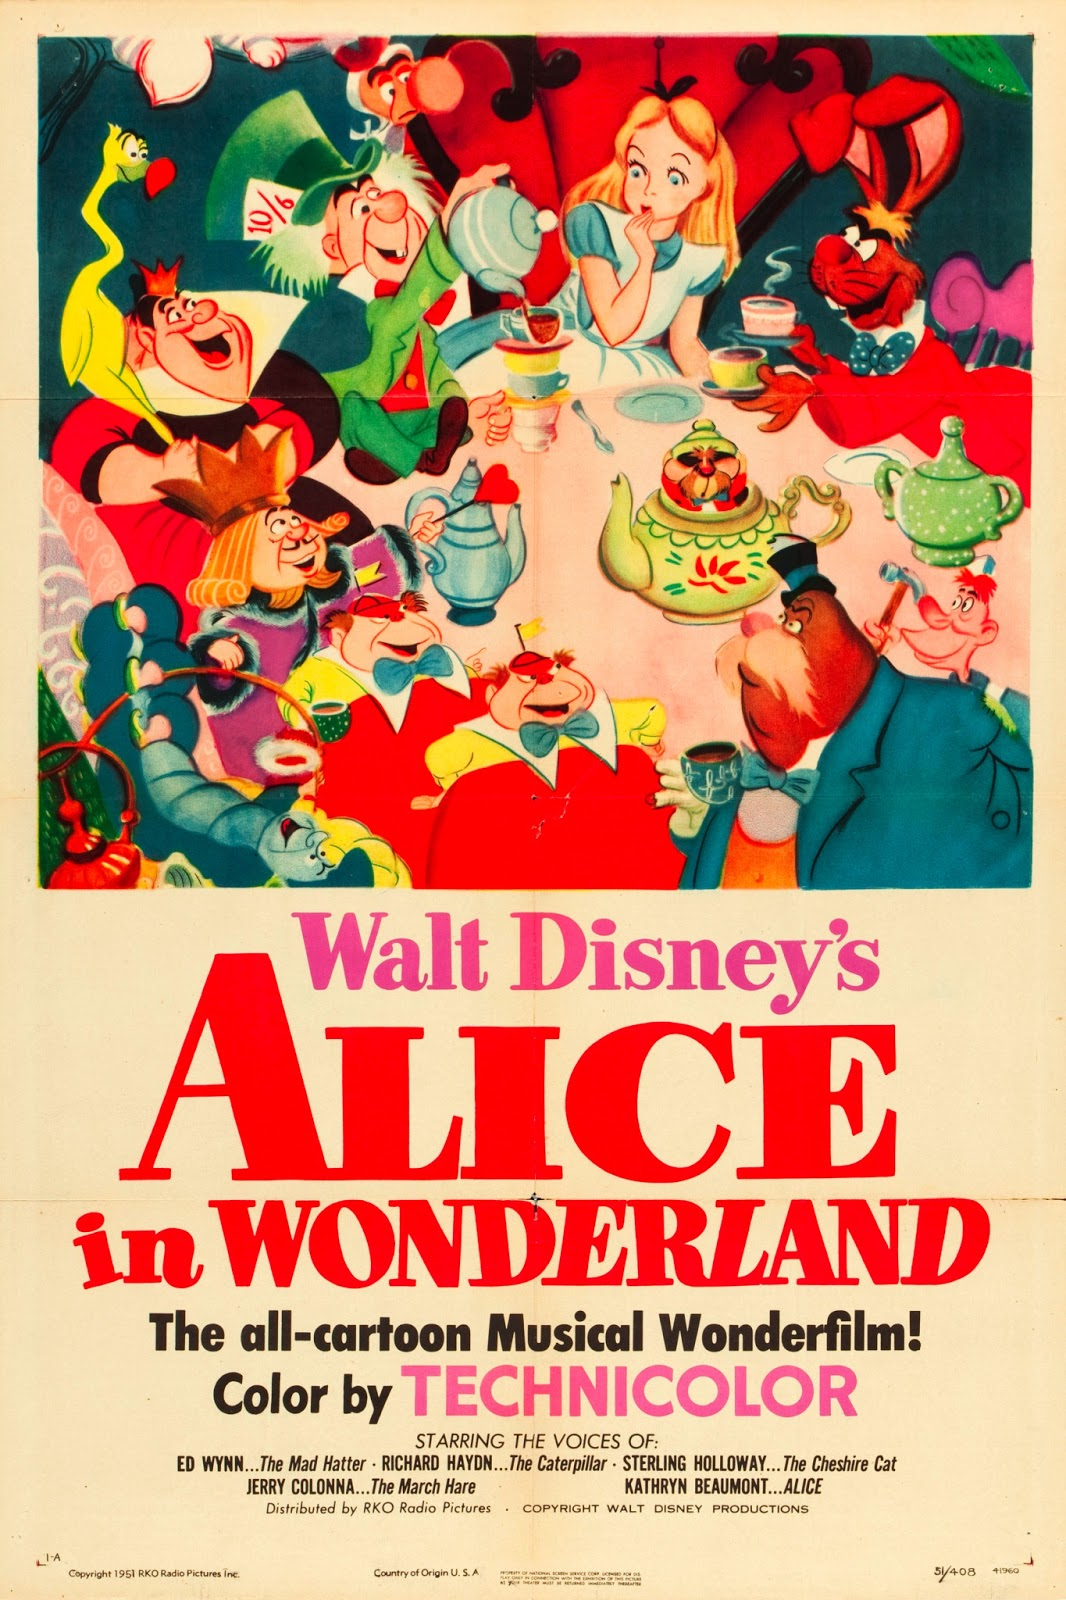 Walt Disney Original Posters It 39 S Elementary